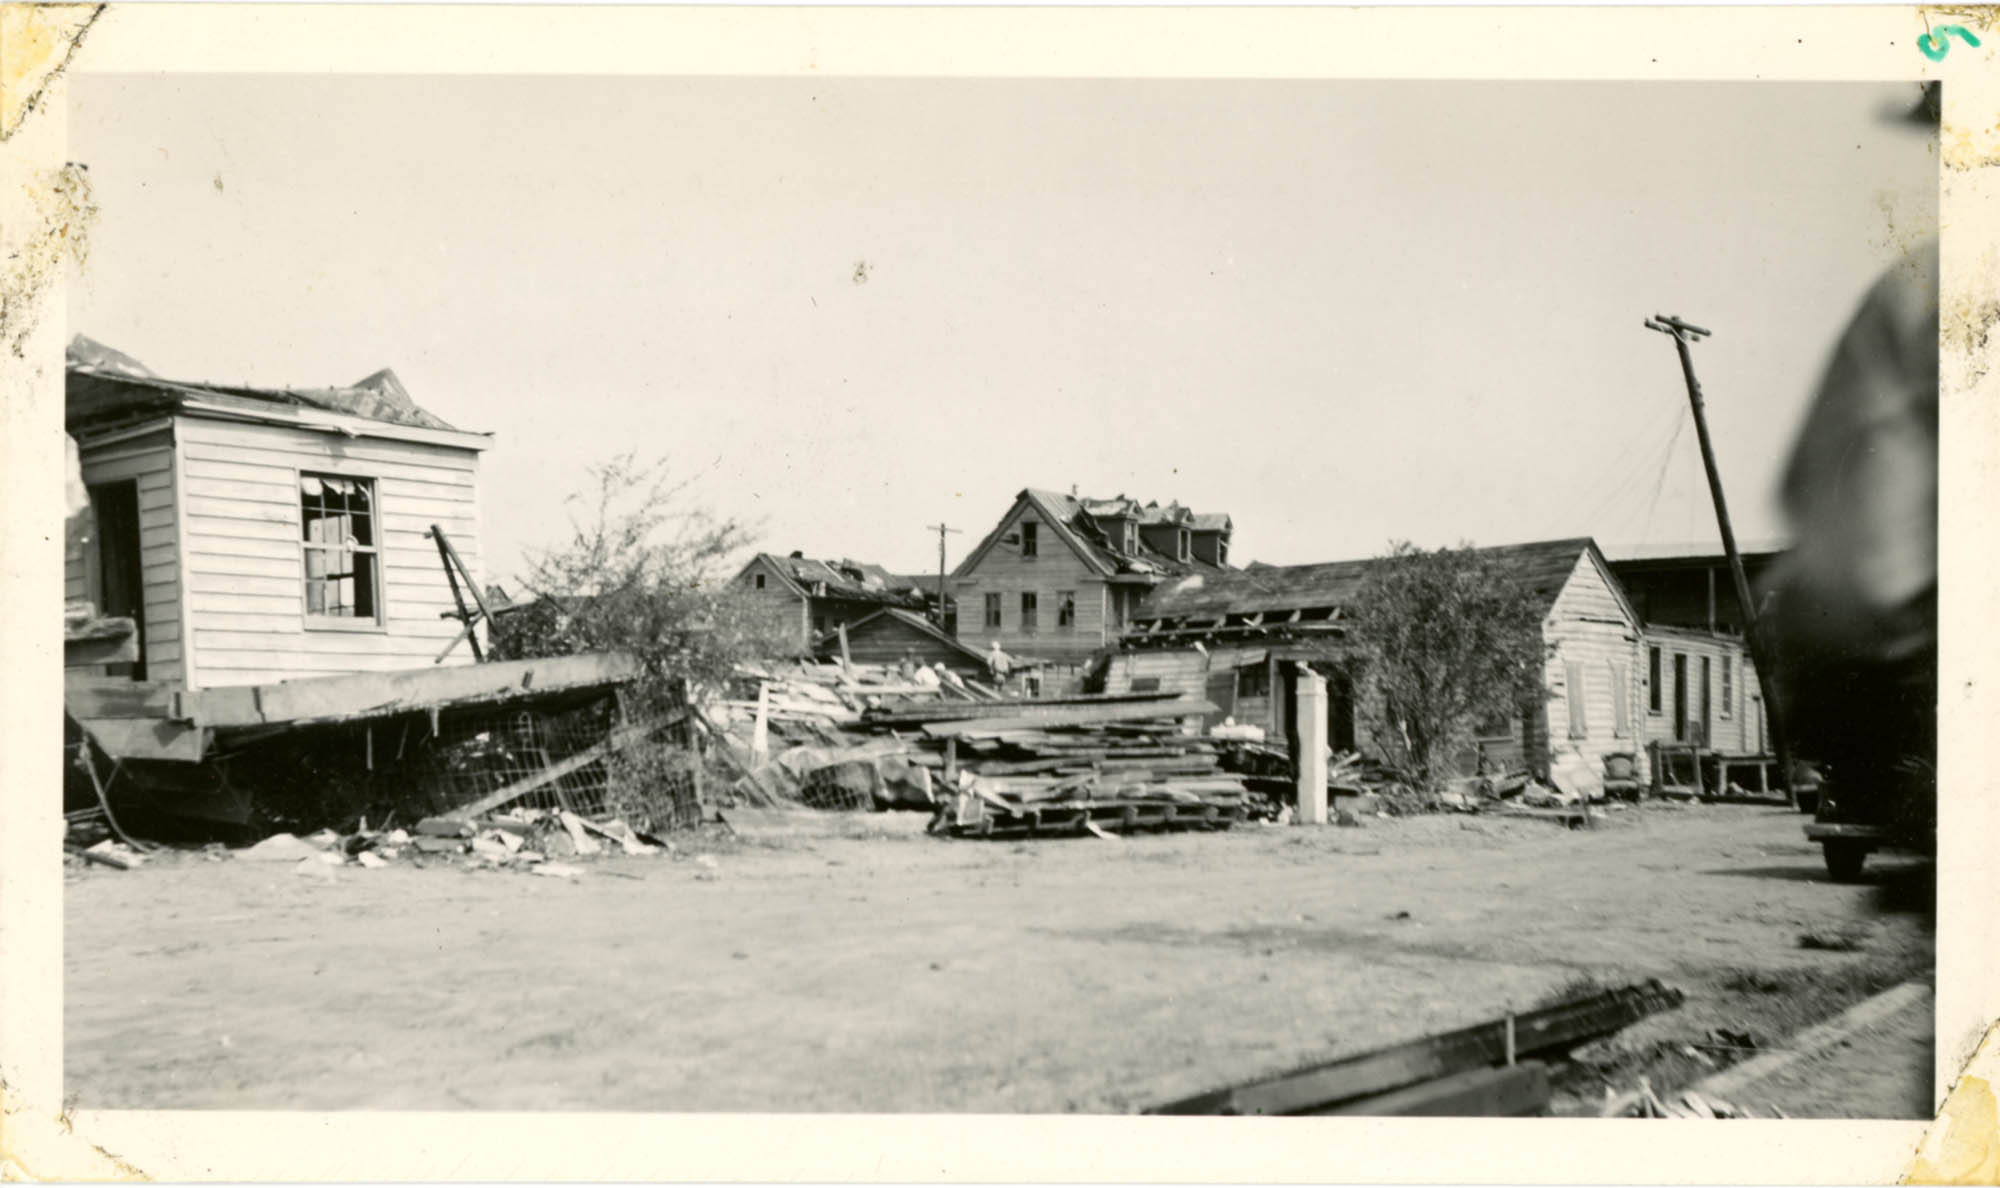 Fiddlers Green Dwellings After the 1938 Tornado